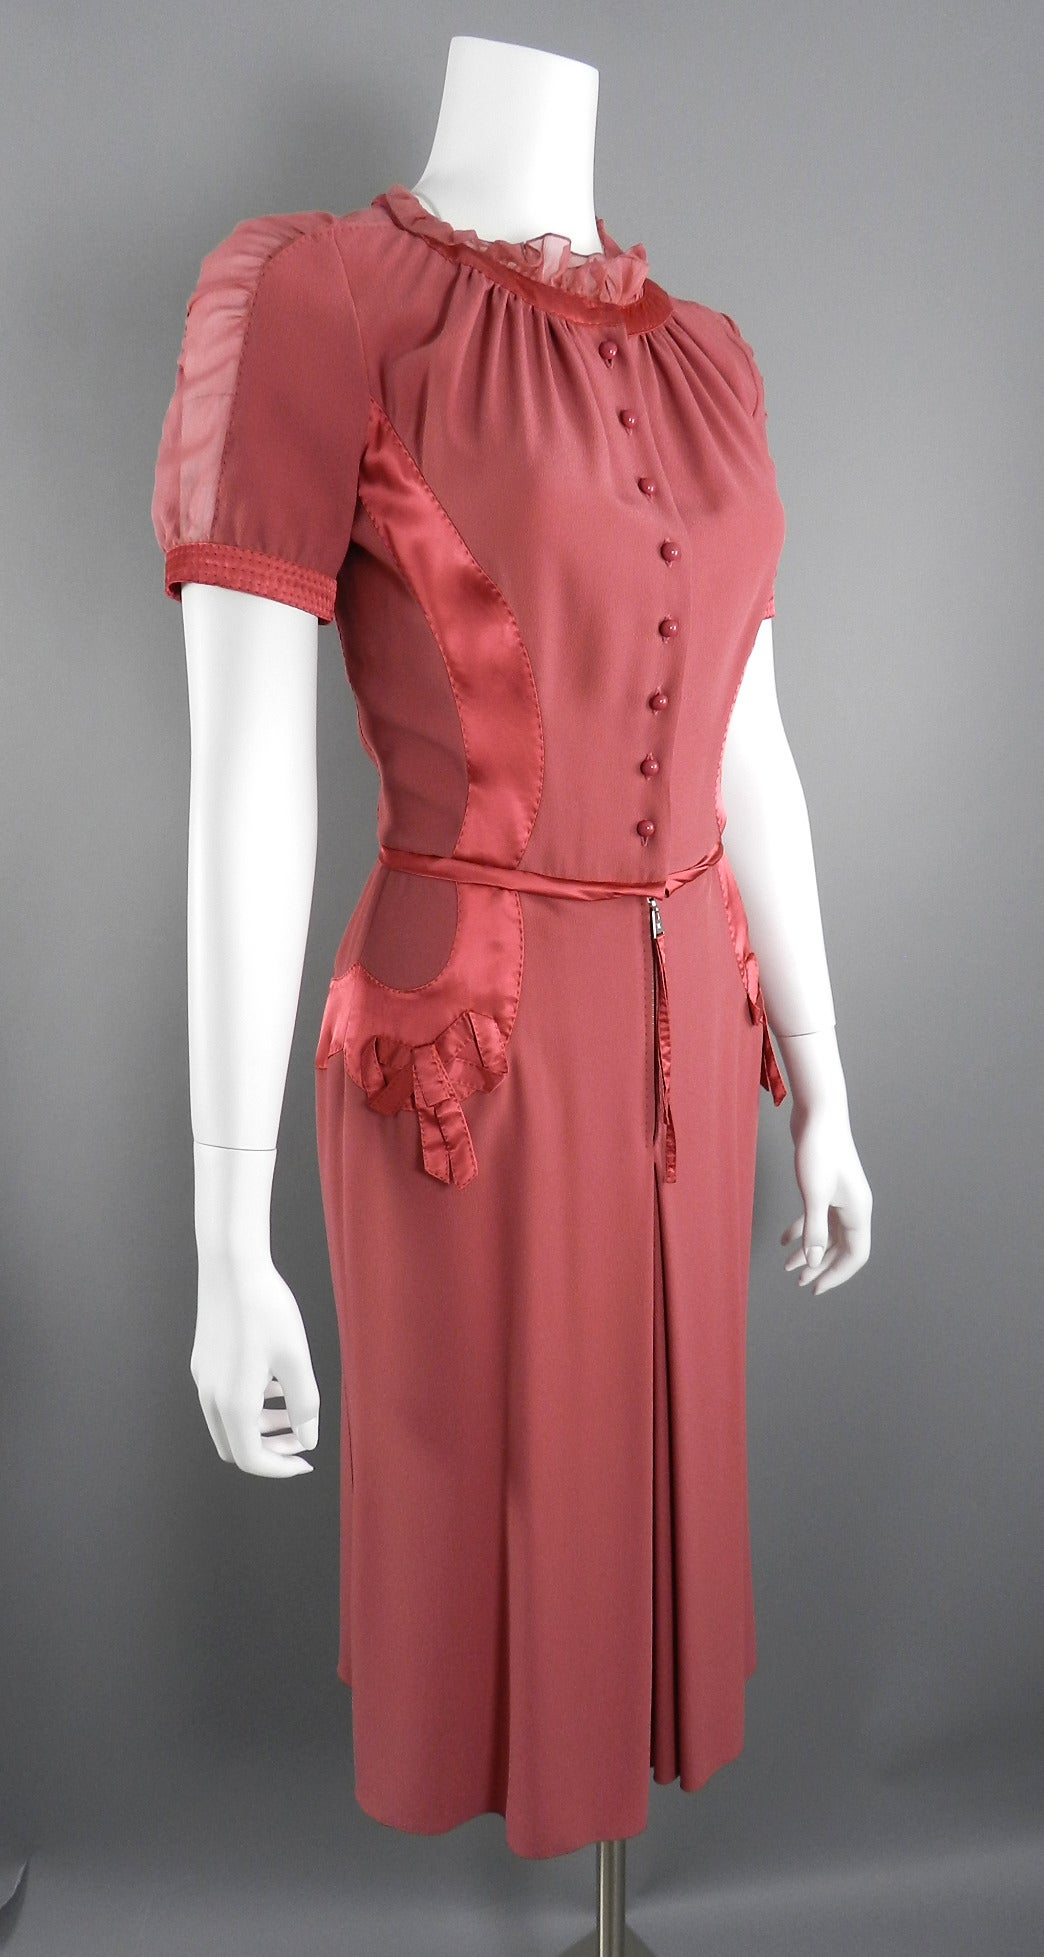 Louis Vuitton Rose Color 1930's Vintage Style Dress 2